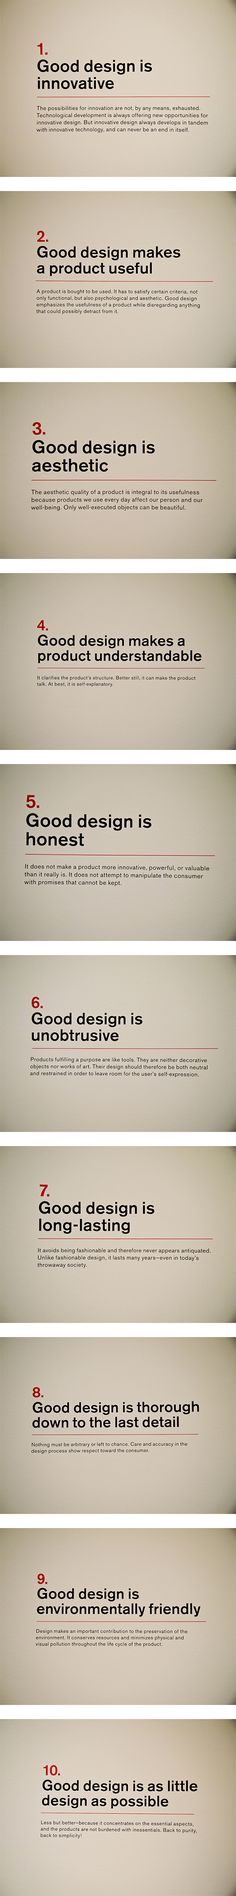 "Timeless advice from Dieter Rams - ""Ten principles for Good Design"""